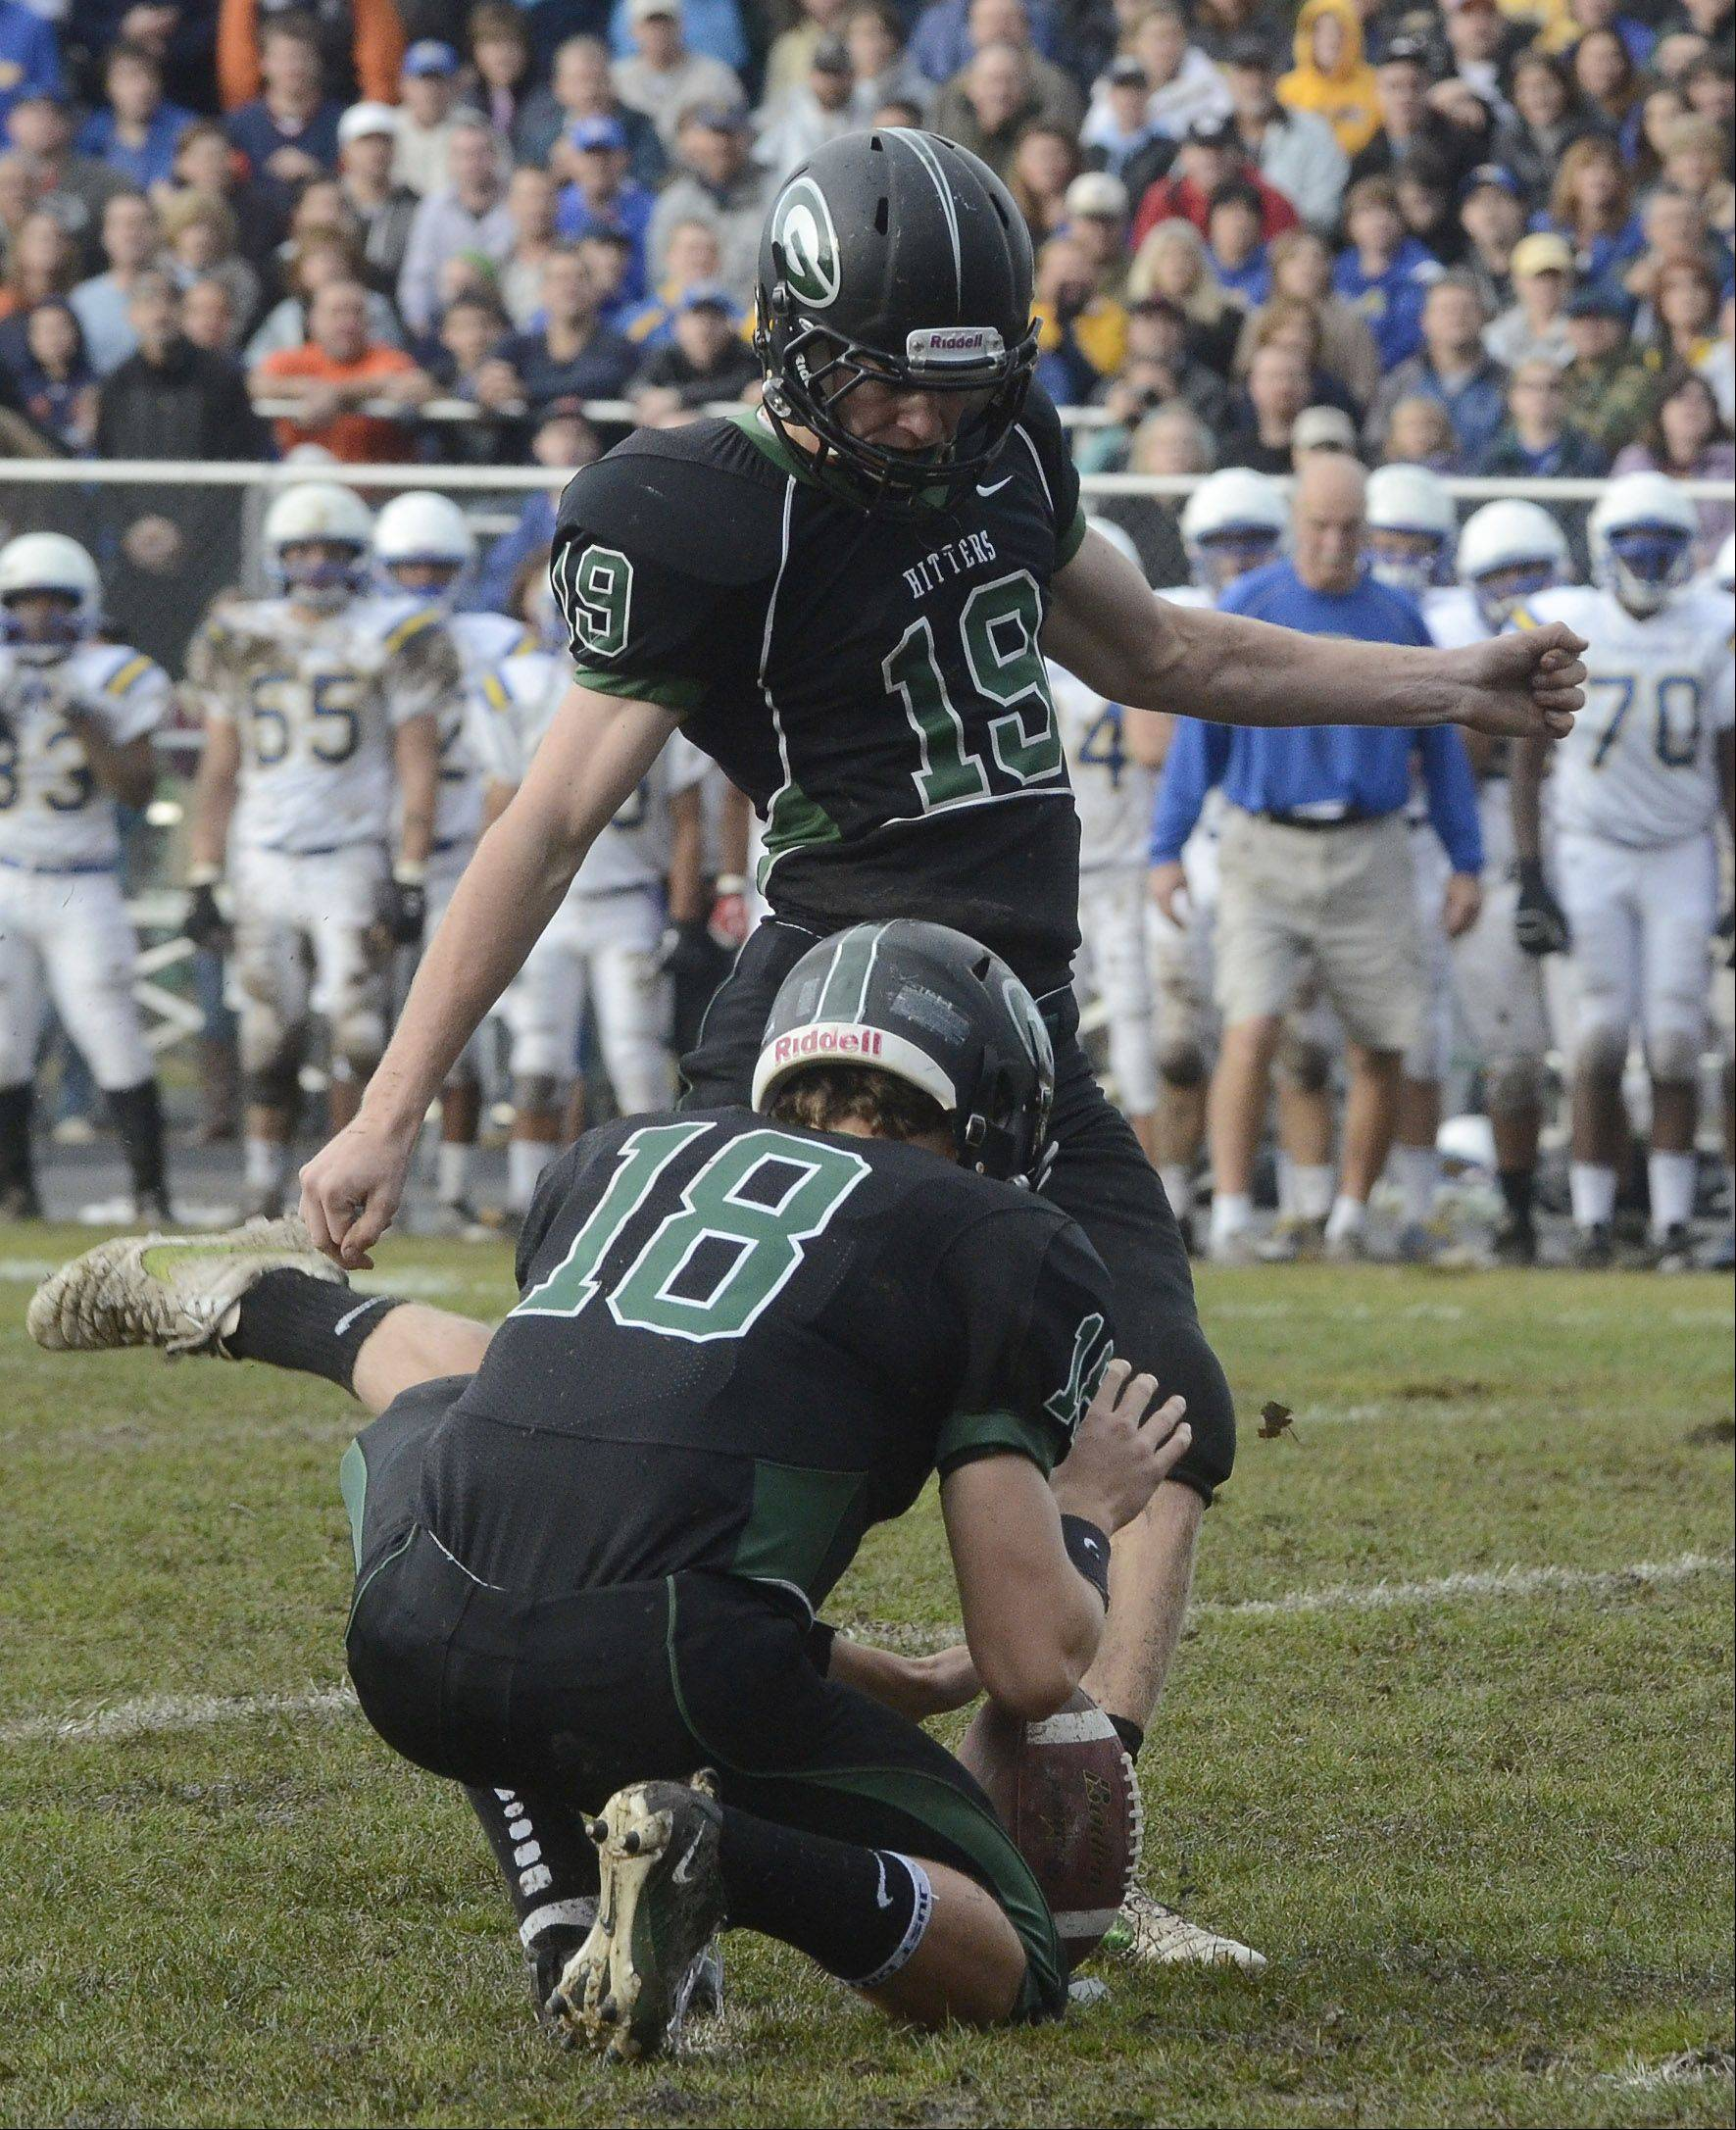 Glenbard West's Hayden Lekacz kicks a field goal with Drew Vogg holding during the Hilltoppers' 3-0 win over Wheaton North Saturday.